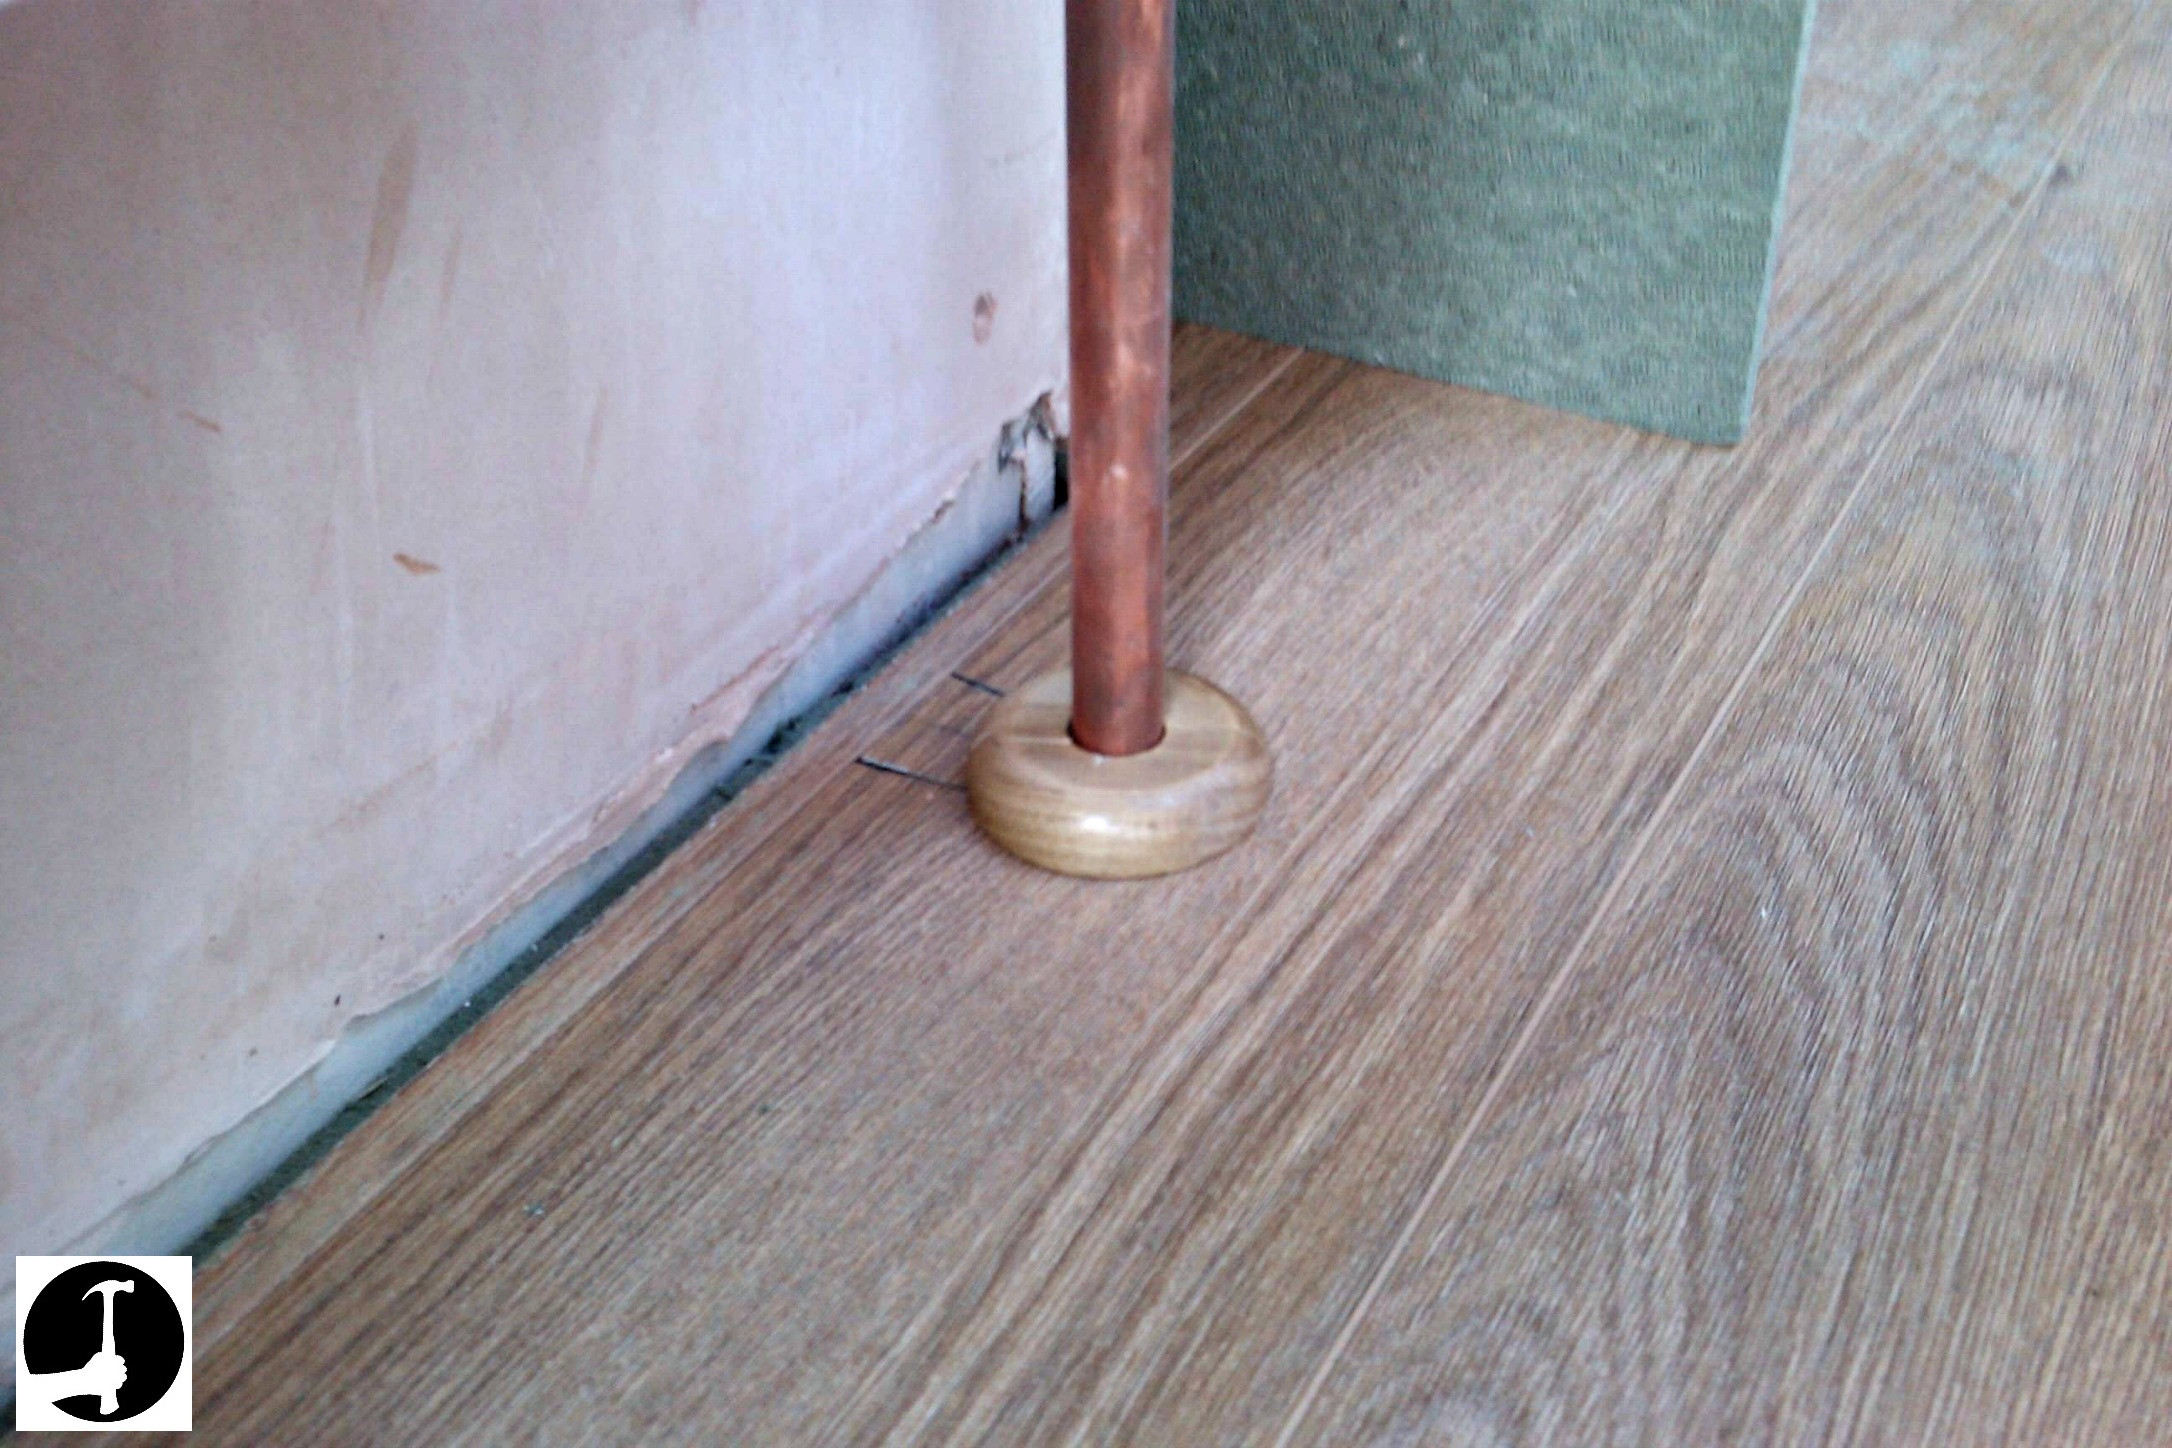 installing tongue and groove hardwood flooring of how to install laminate flooring with ease glued glue less systems in how to cut laminate around pipes